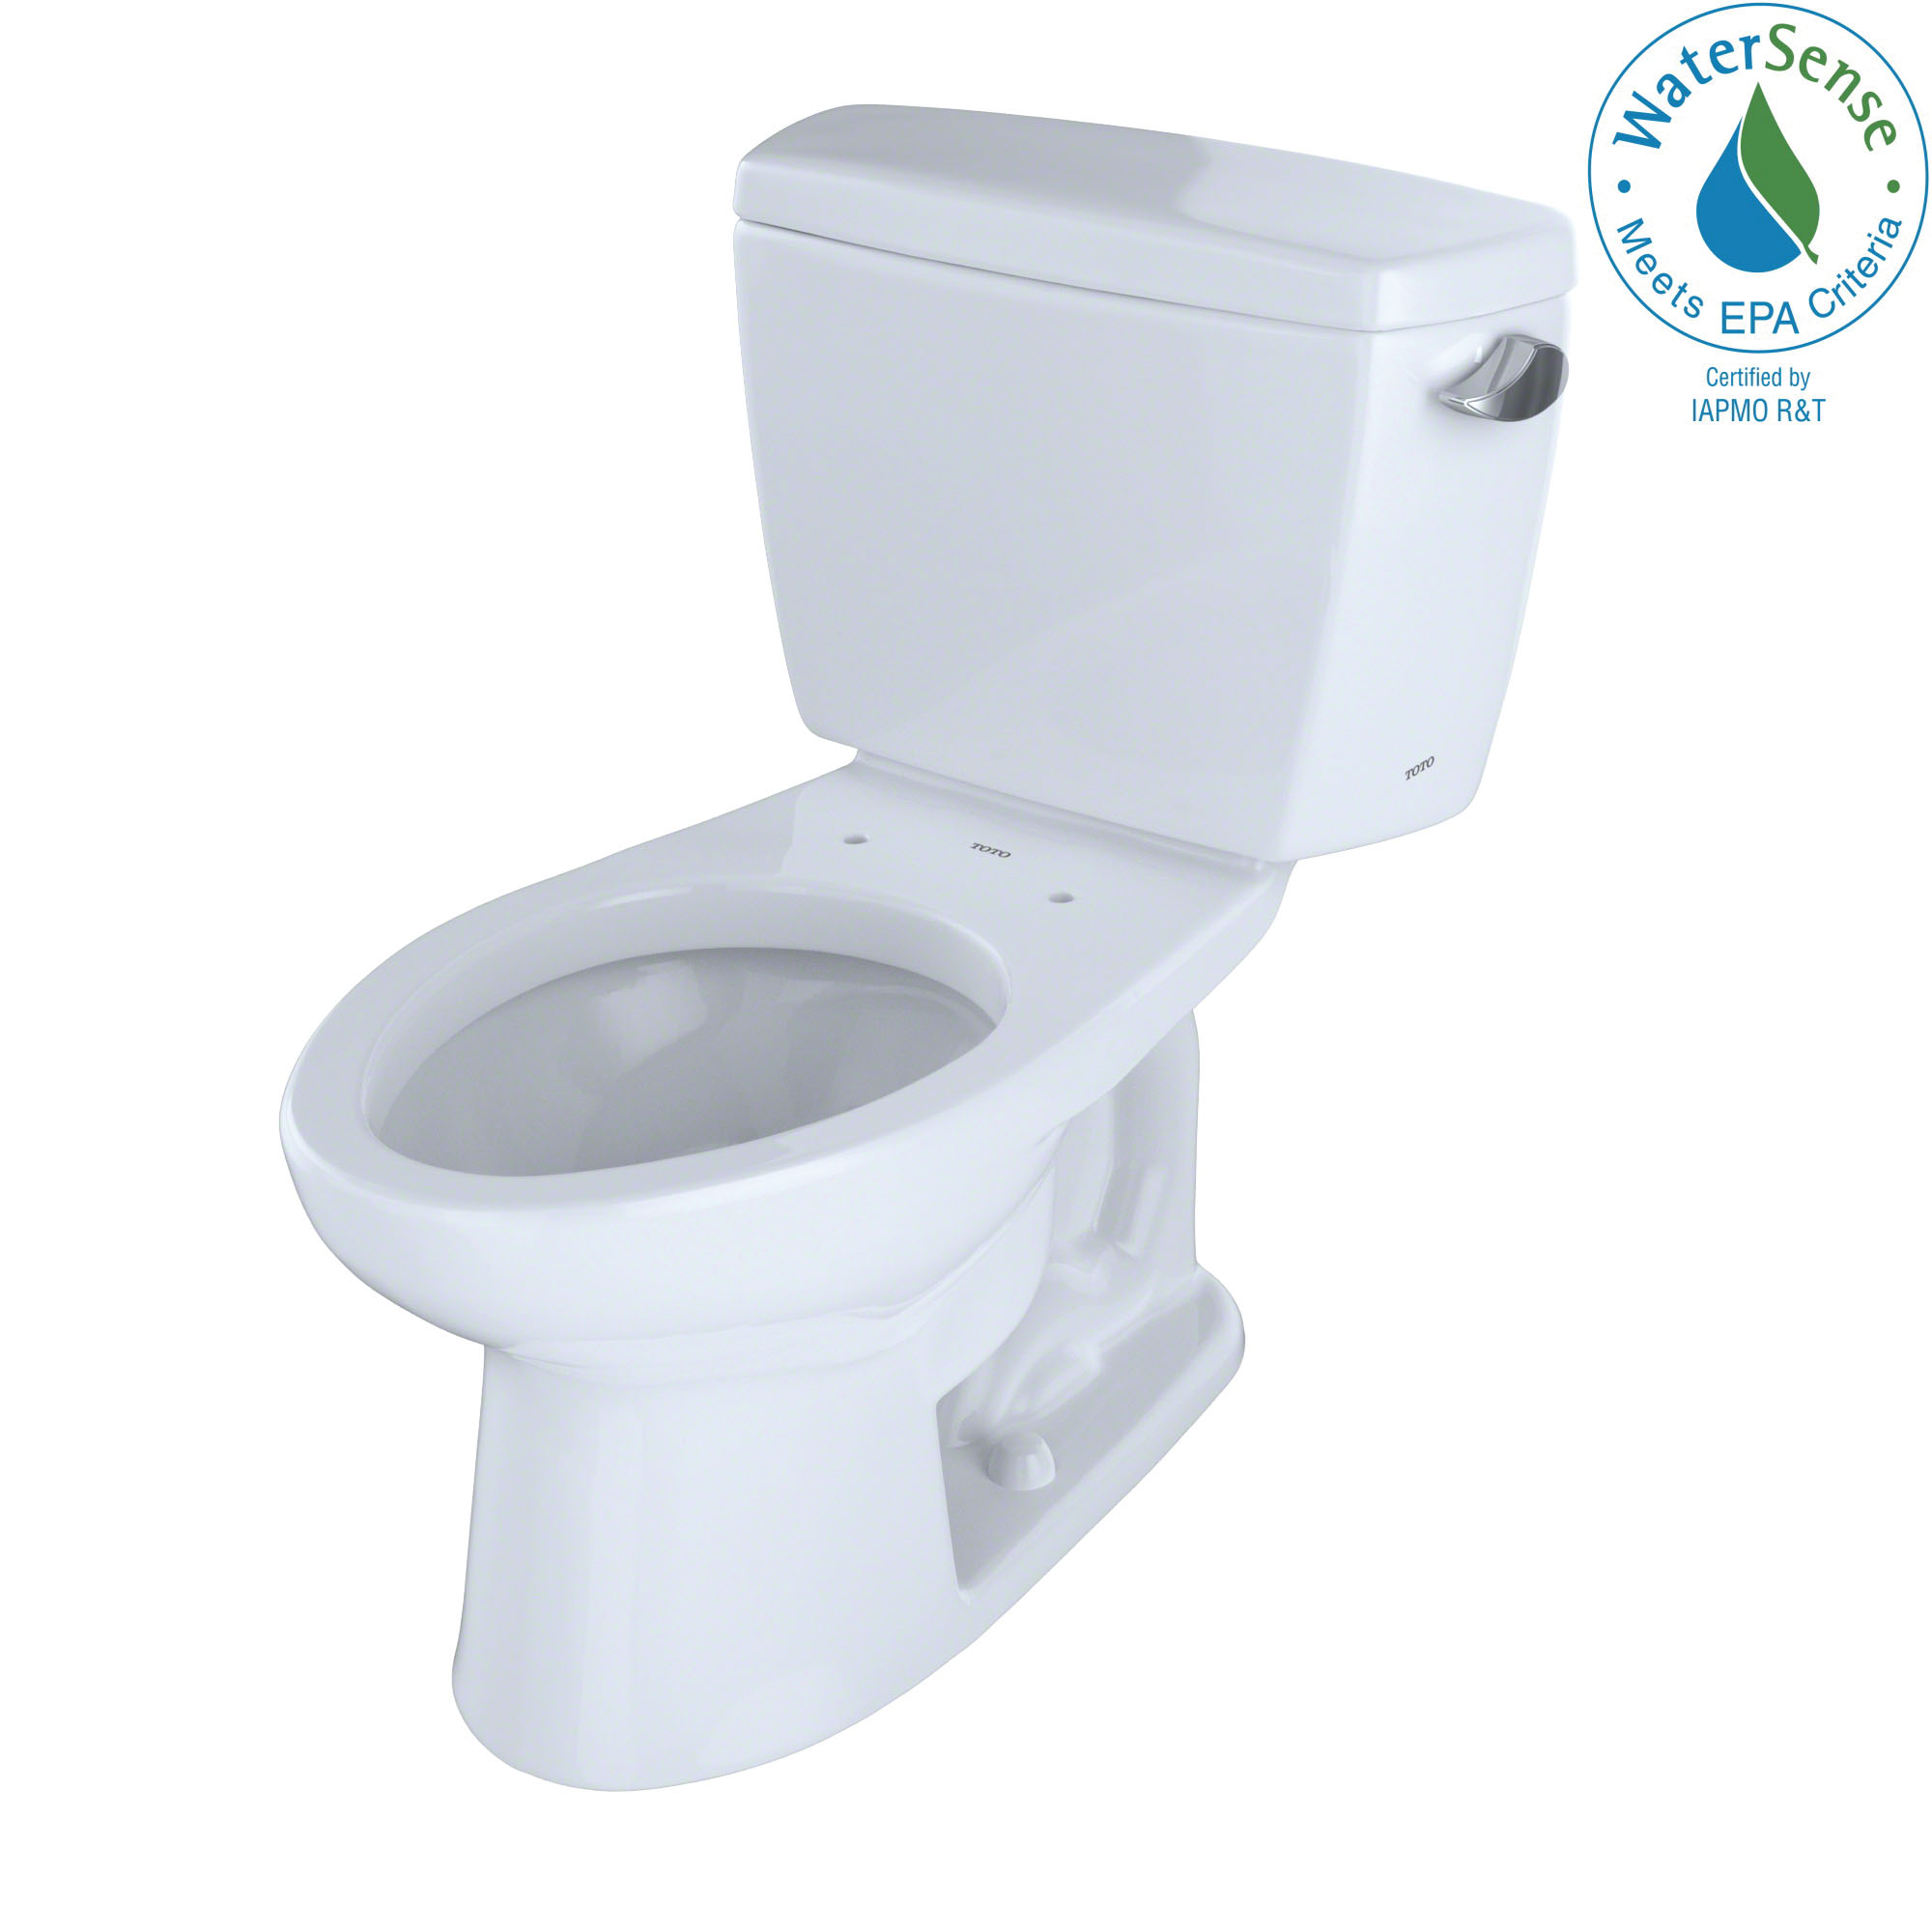 Toto® CST744ELR#01 Universal Height Close Coupled Toilet With Right-Hand Trip Lever, Eco Drake®, Elongated Bowl, 17-5/8 in H Rim, 12 in Rough-In, 1.28 gpf, Cotton White, Import